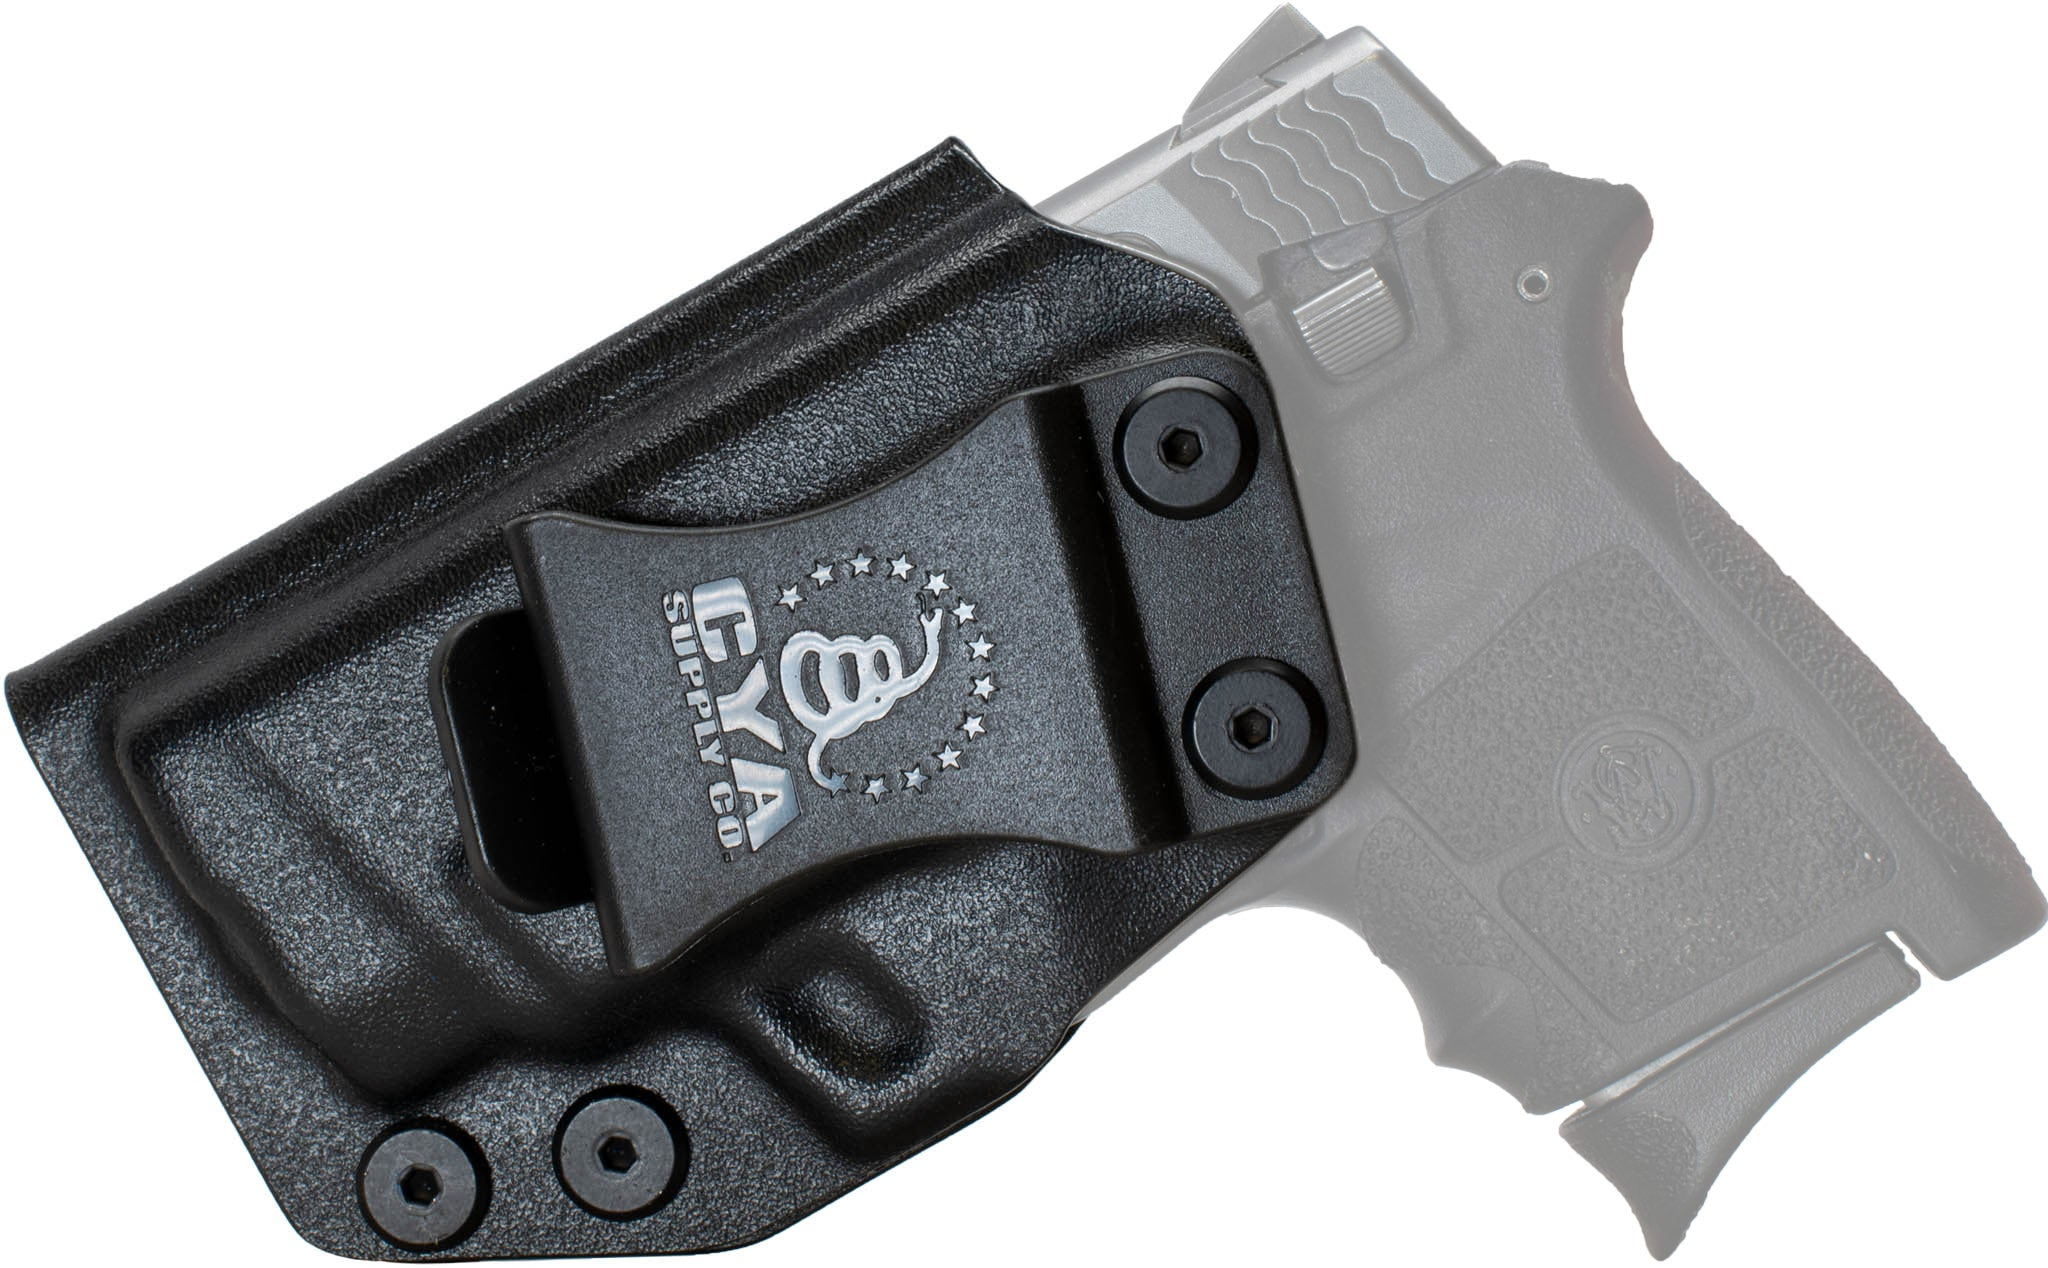 Fits S/&W Bodyguard .380 Cytac Locking Quick Draw Carry Holster CY-JB